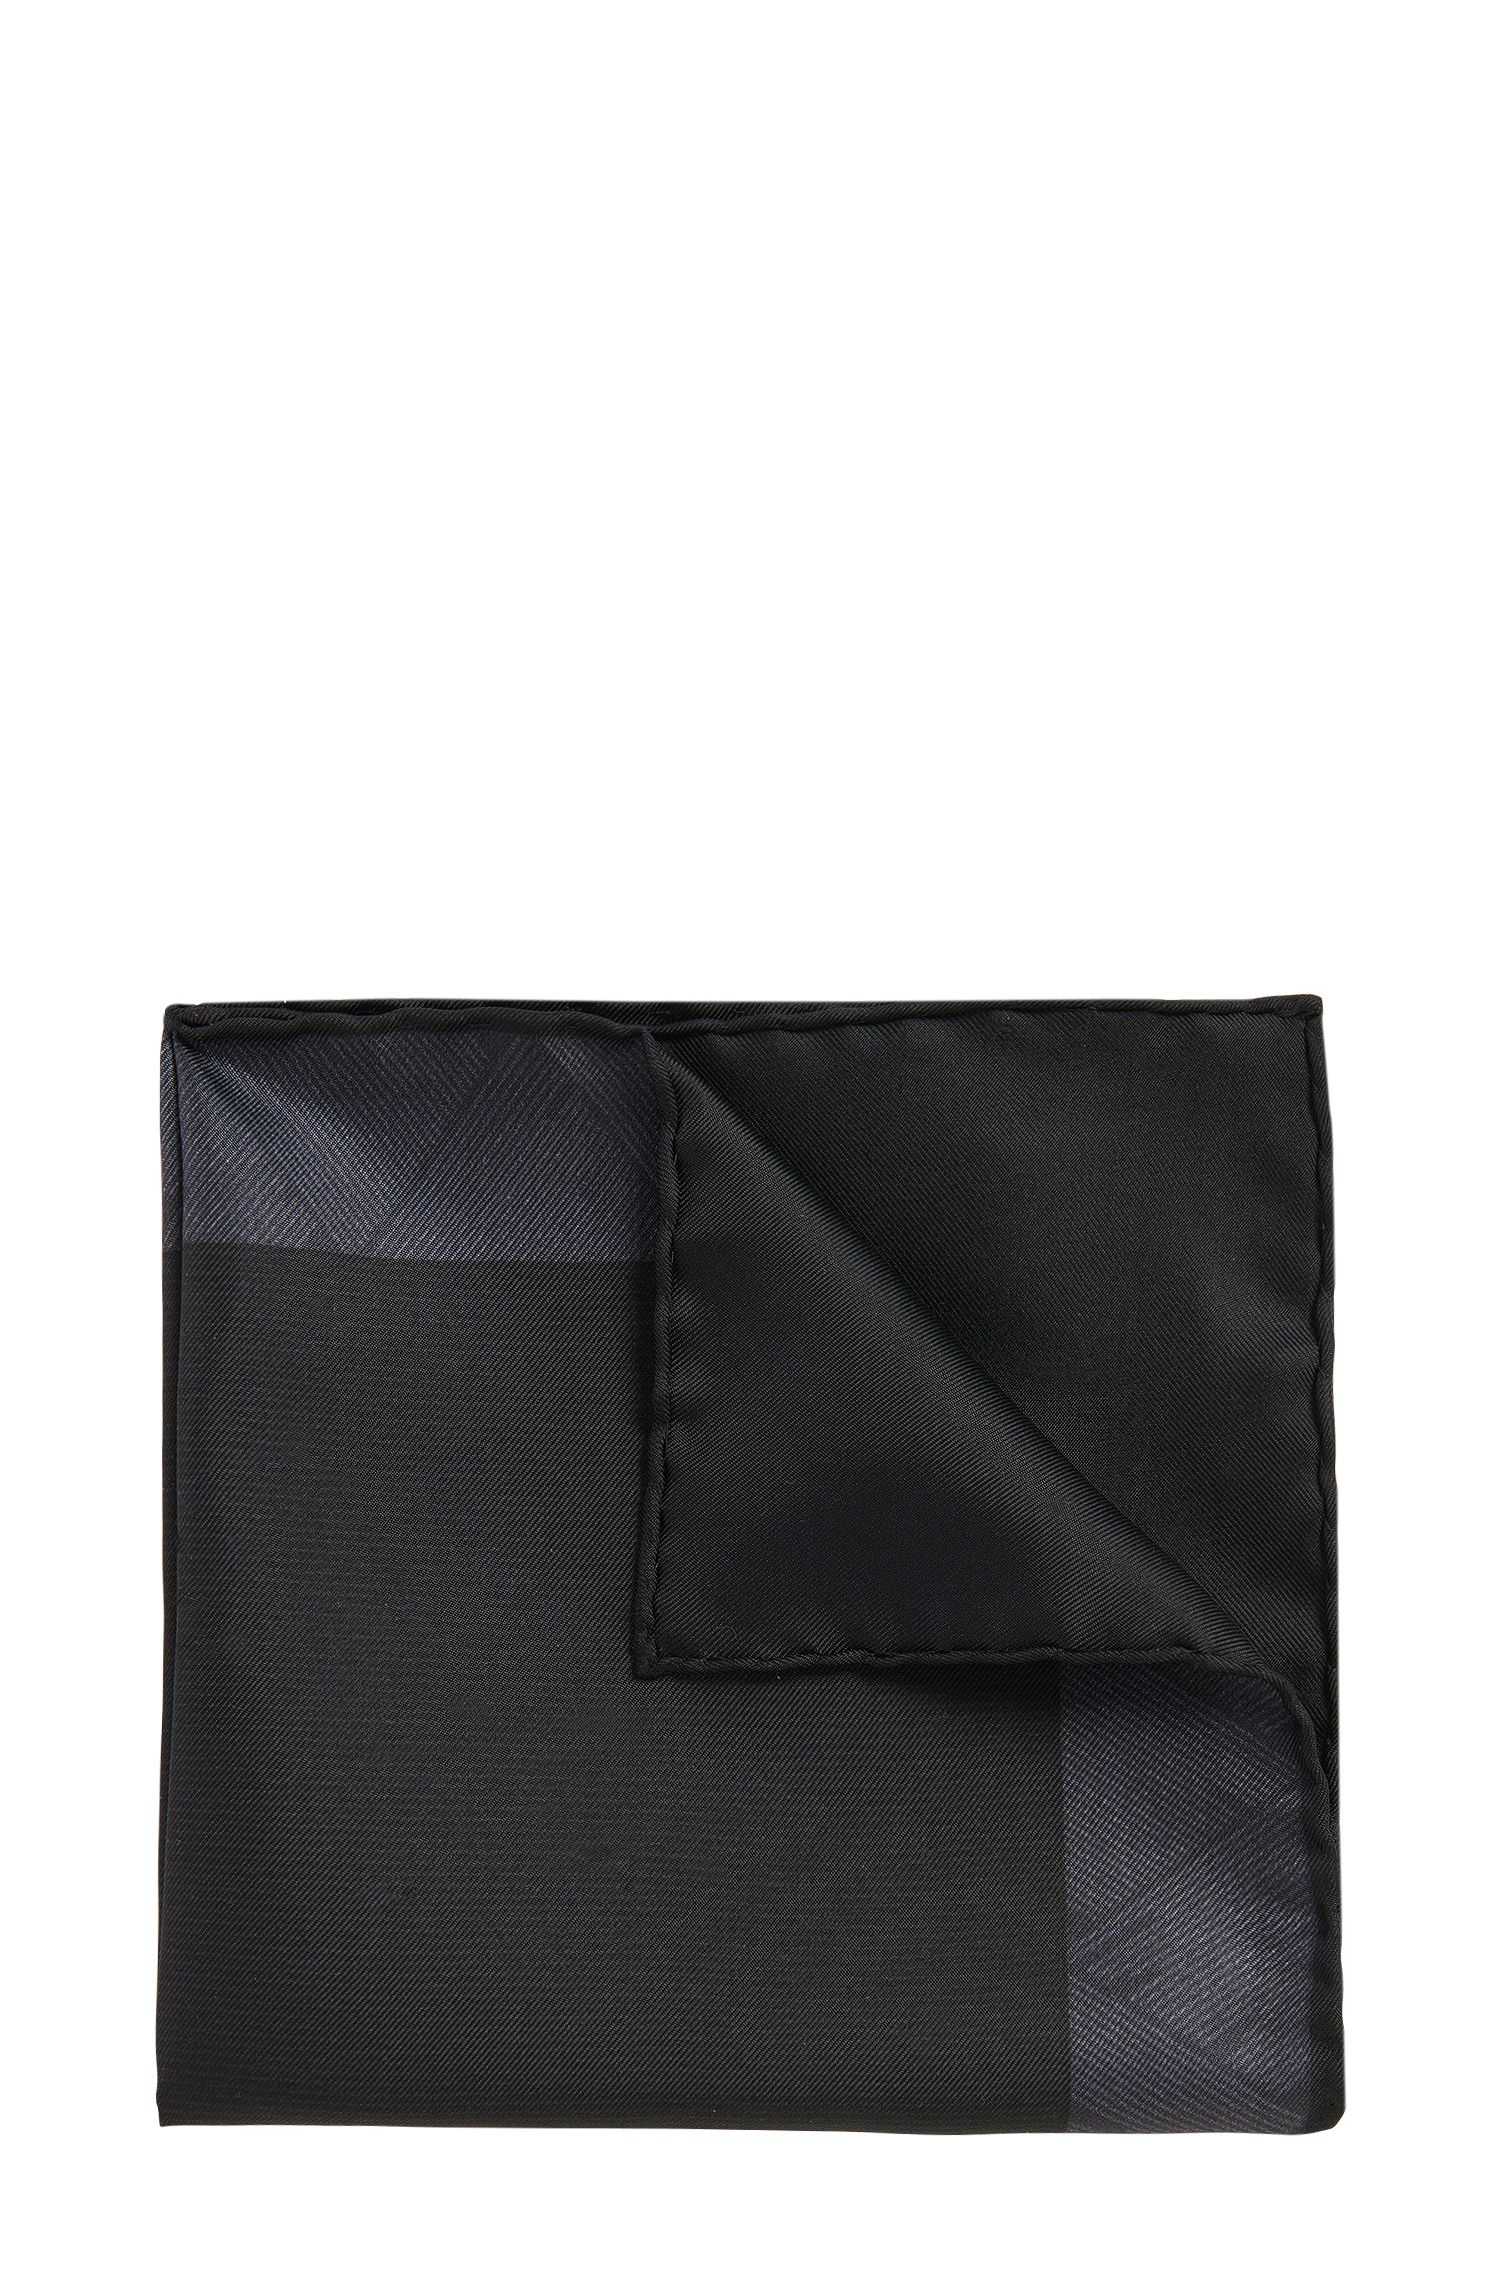 Pochette Tailored en soie à motif discret : « T-Pocket sq. 33x33 cm »